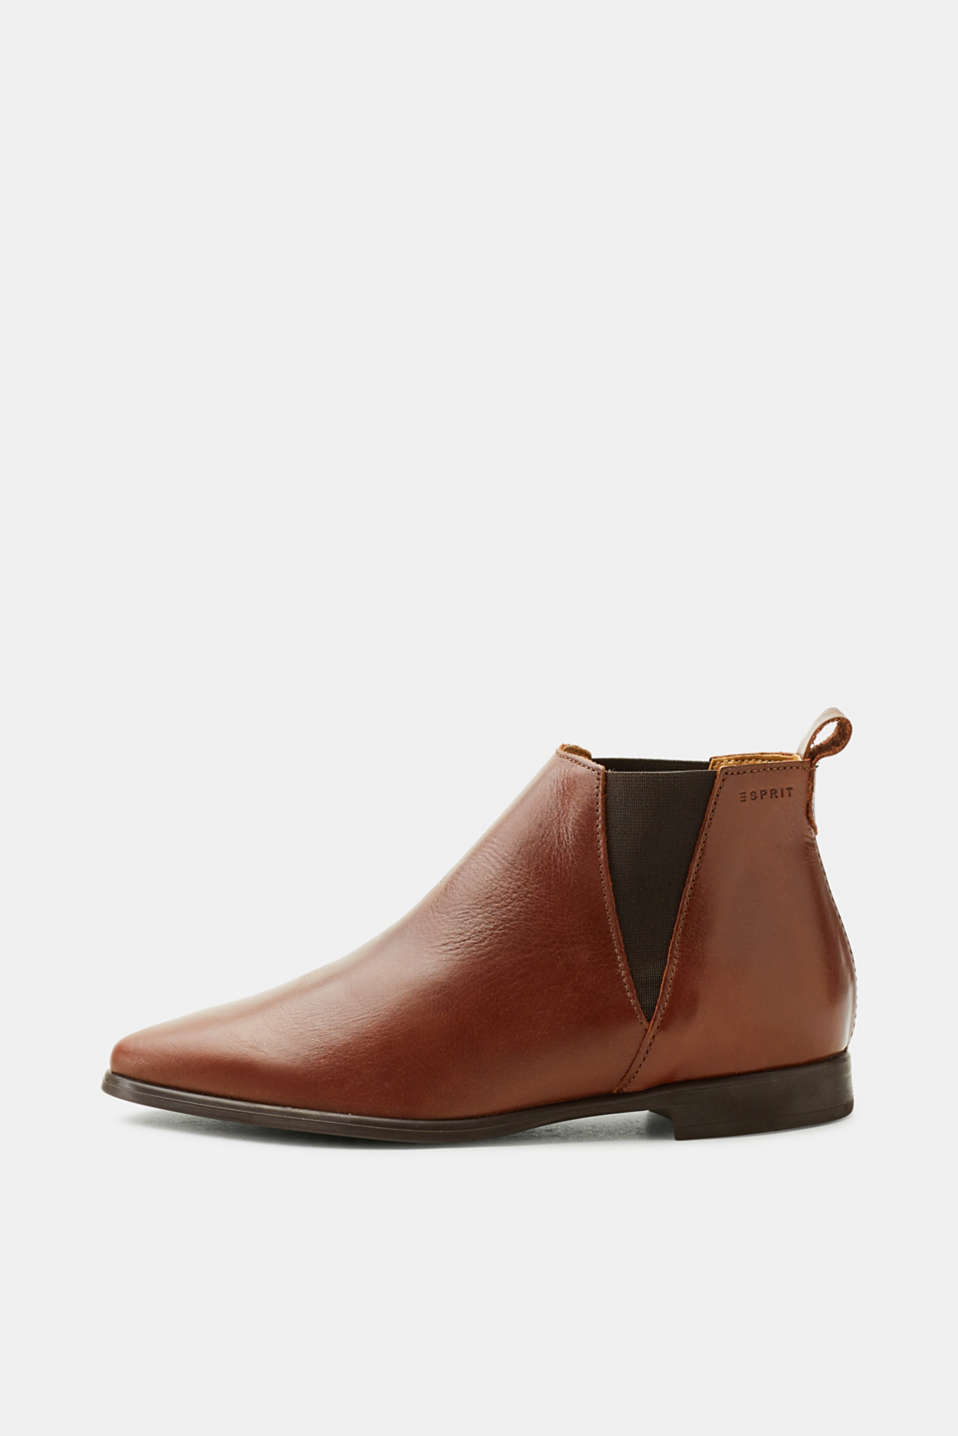 Esprit - Pointed leather Chelsea boots